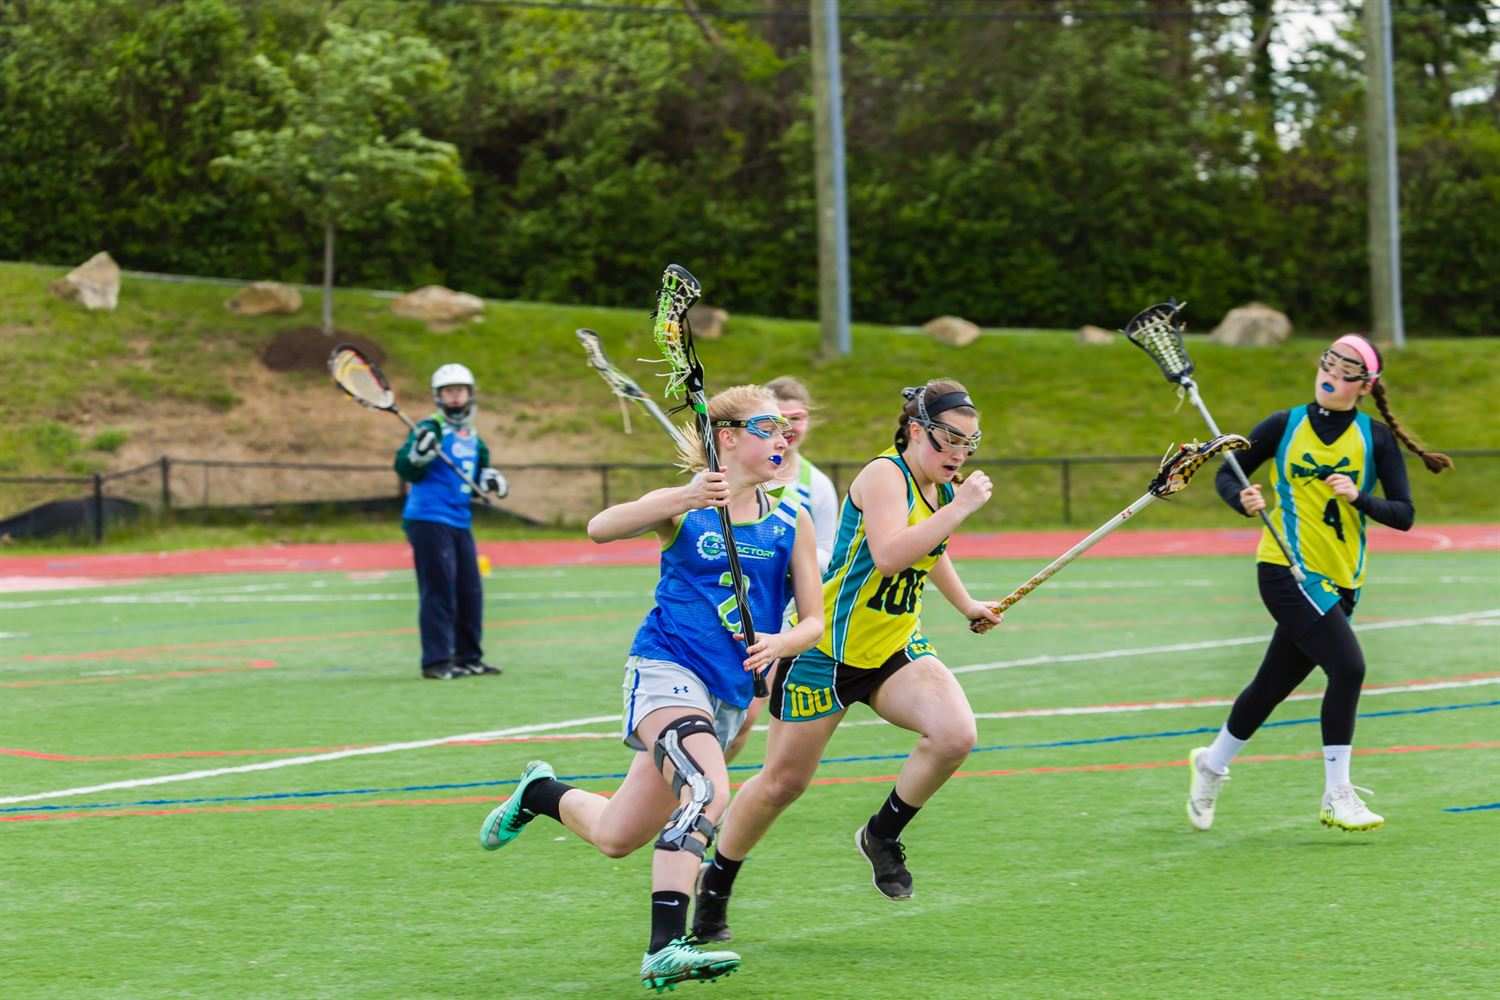 3d Maryland - Lax Factory Girls